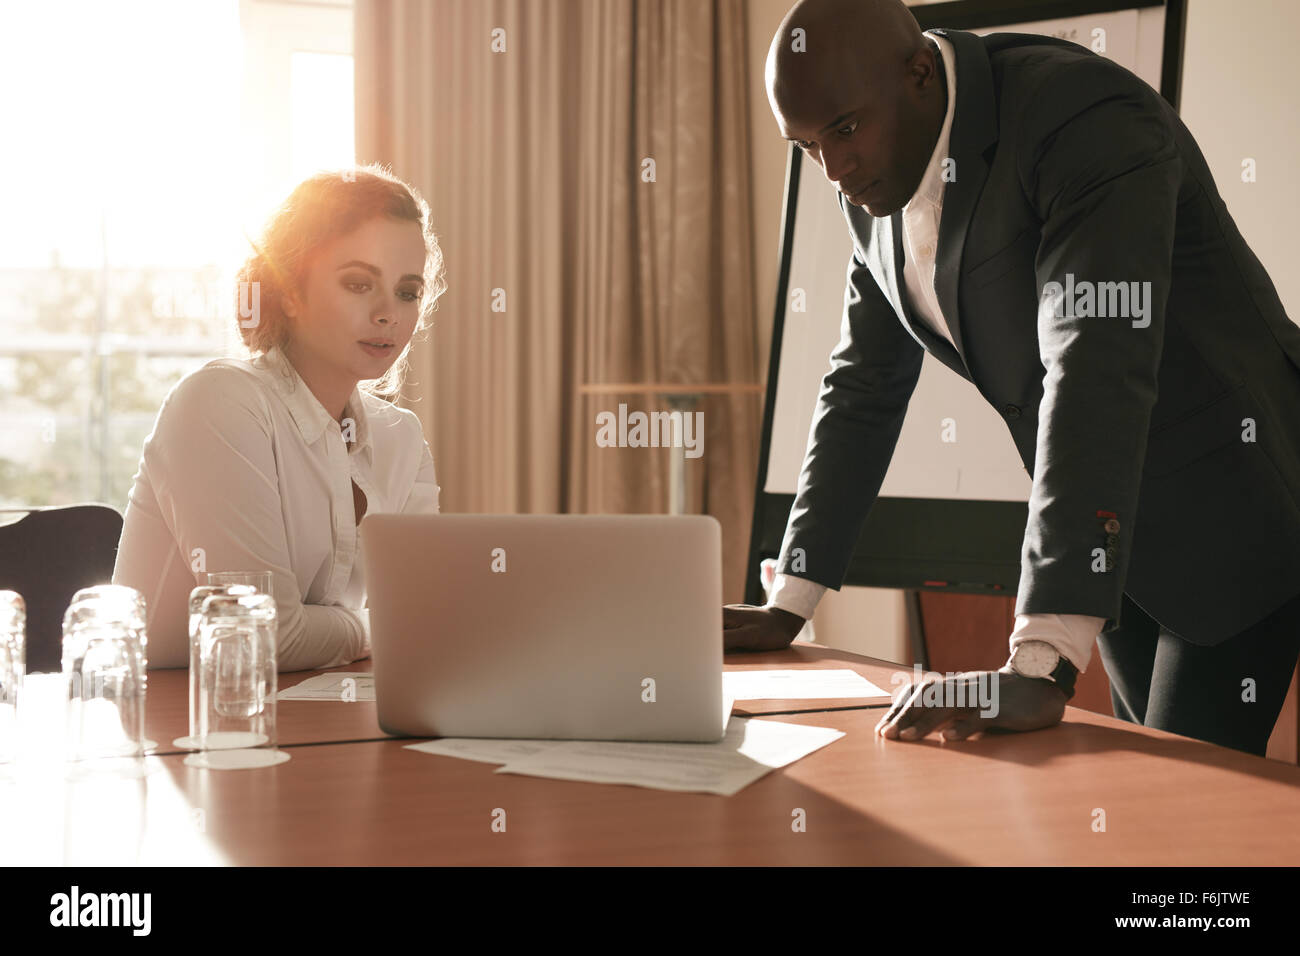 Two business people looking at business plan on laptop. Businessman and businesswoman in conference room working - Stock Image